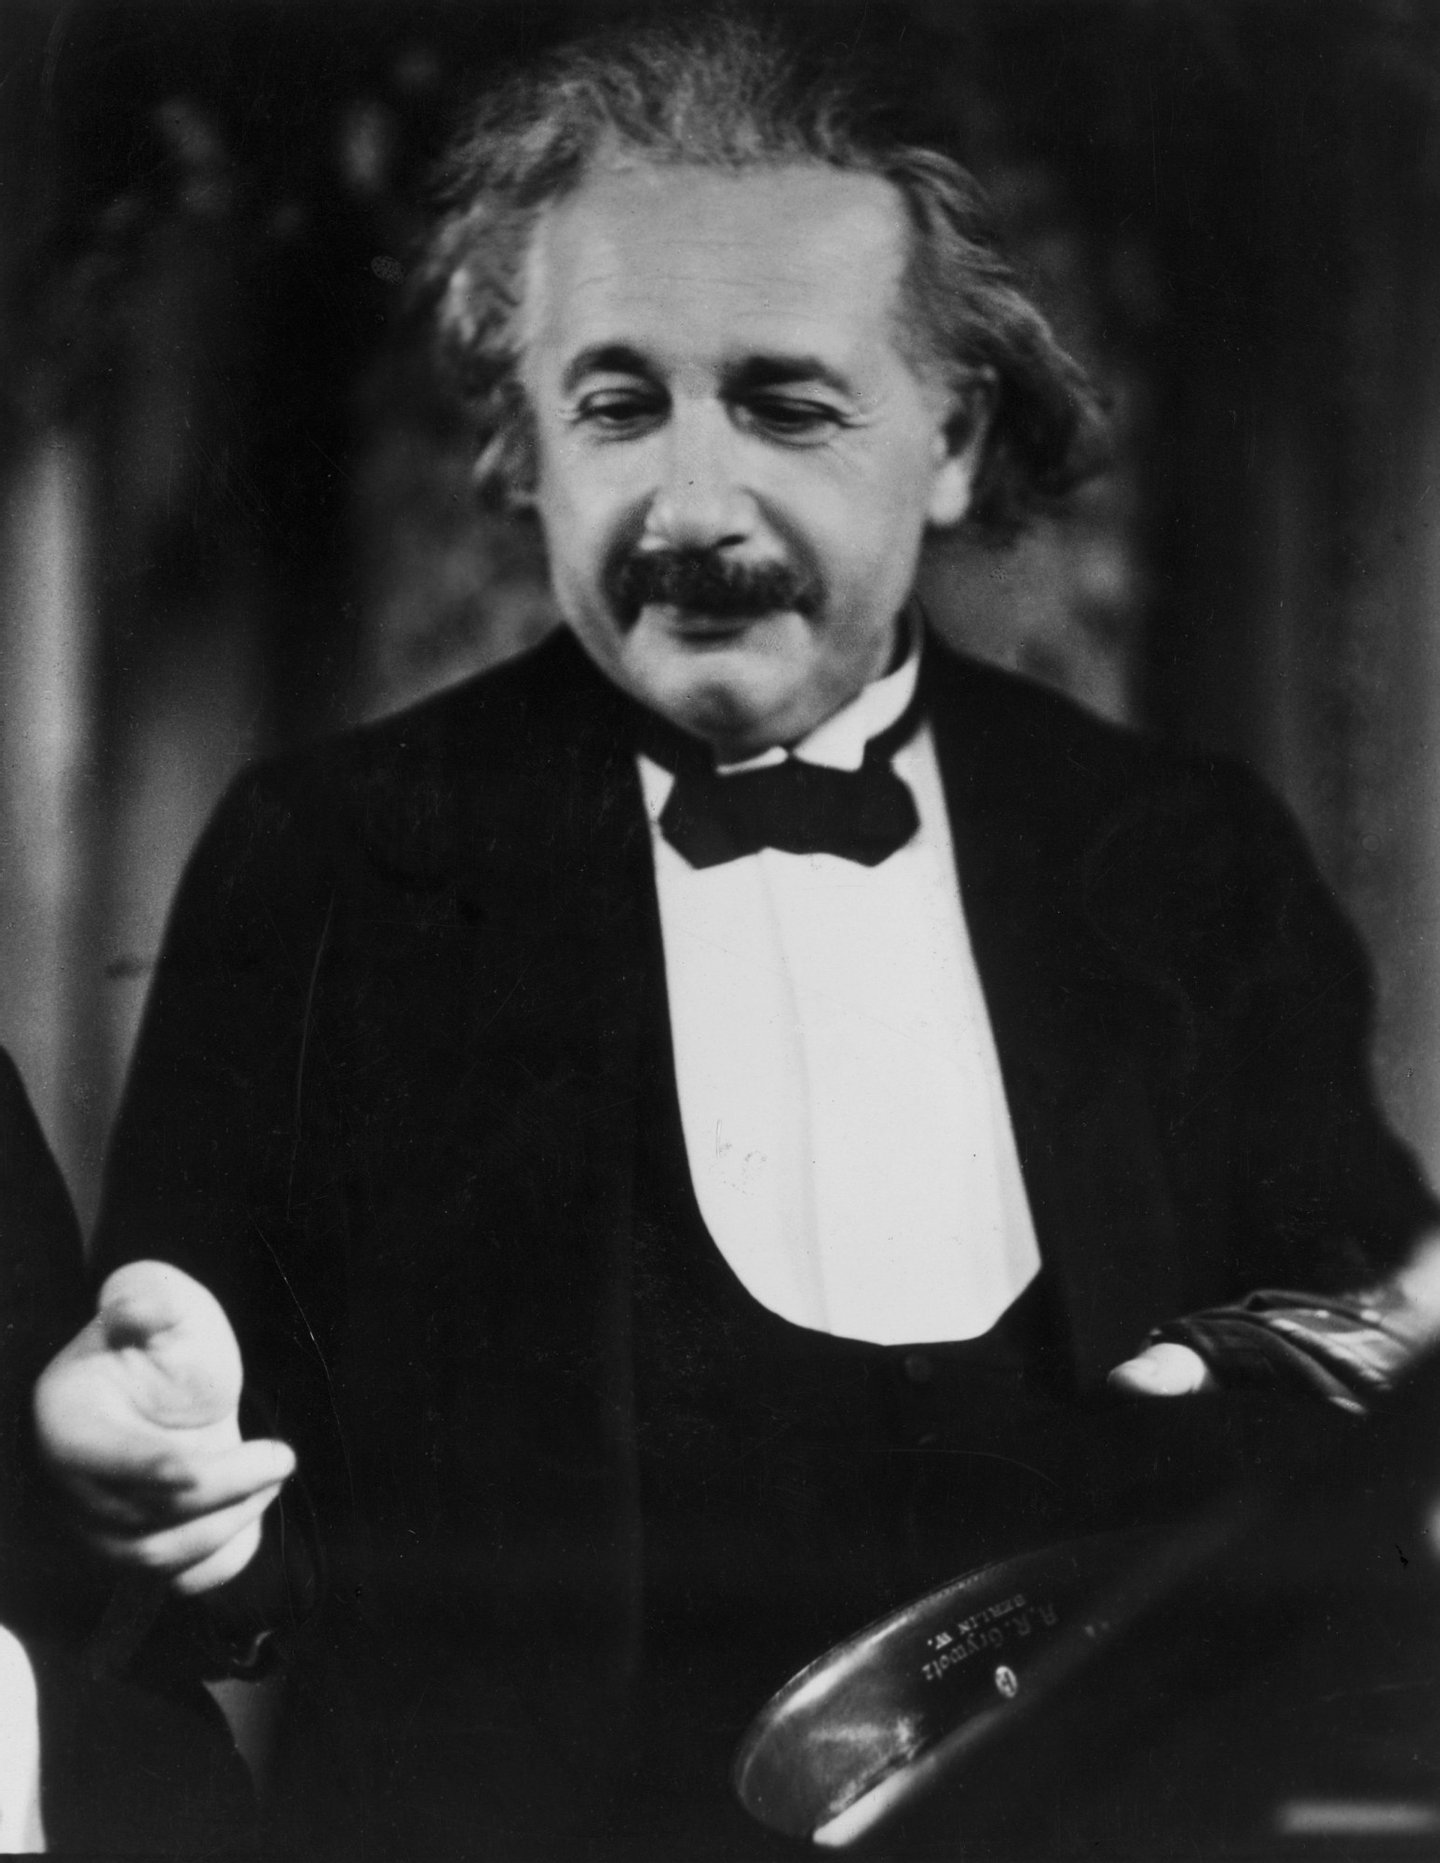 February 1931: Albert Einstein (1879-1955), German-born American physicist and Nobel laureate, best known as the creator of the special and general theories of relativity and for his bold hypothesis concerning the particle nature of light. He is perhaps the best-known scientist of the 20th century. (Photo by Sasha/Getty Images)